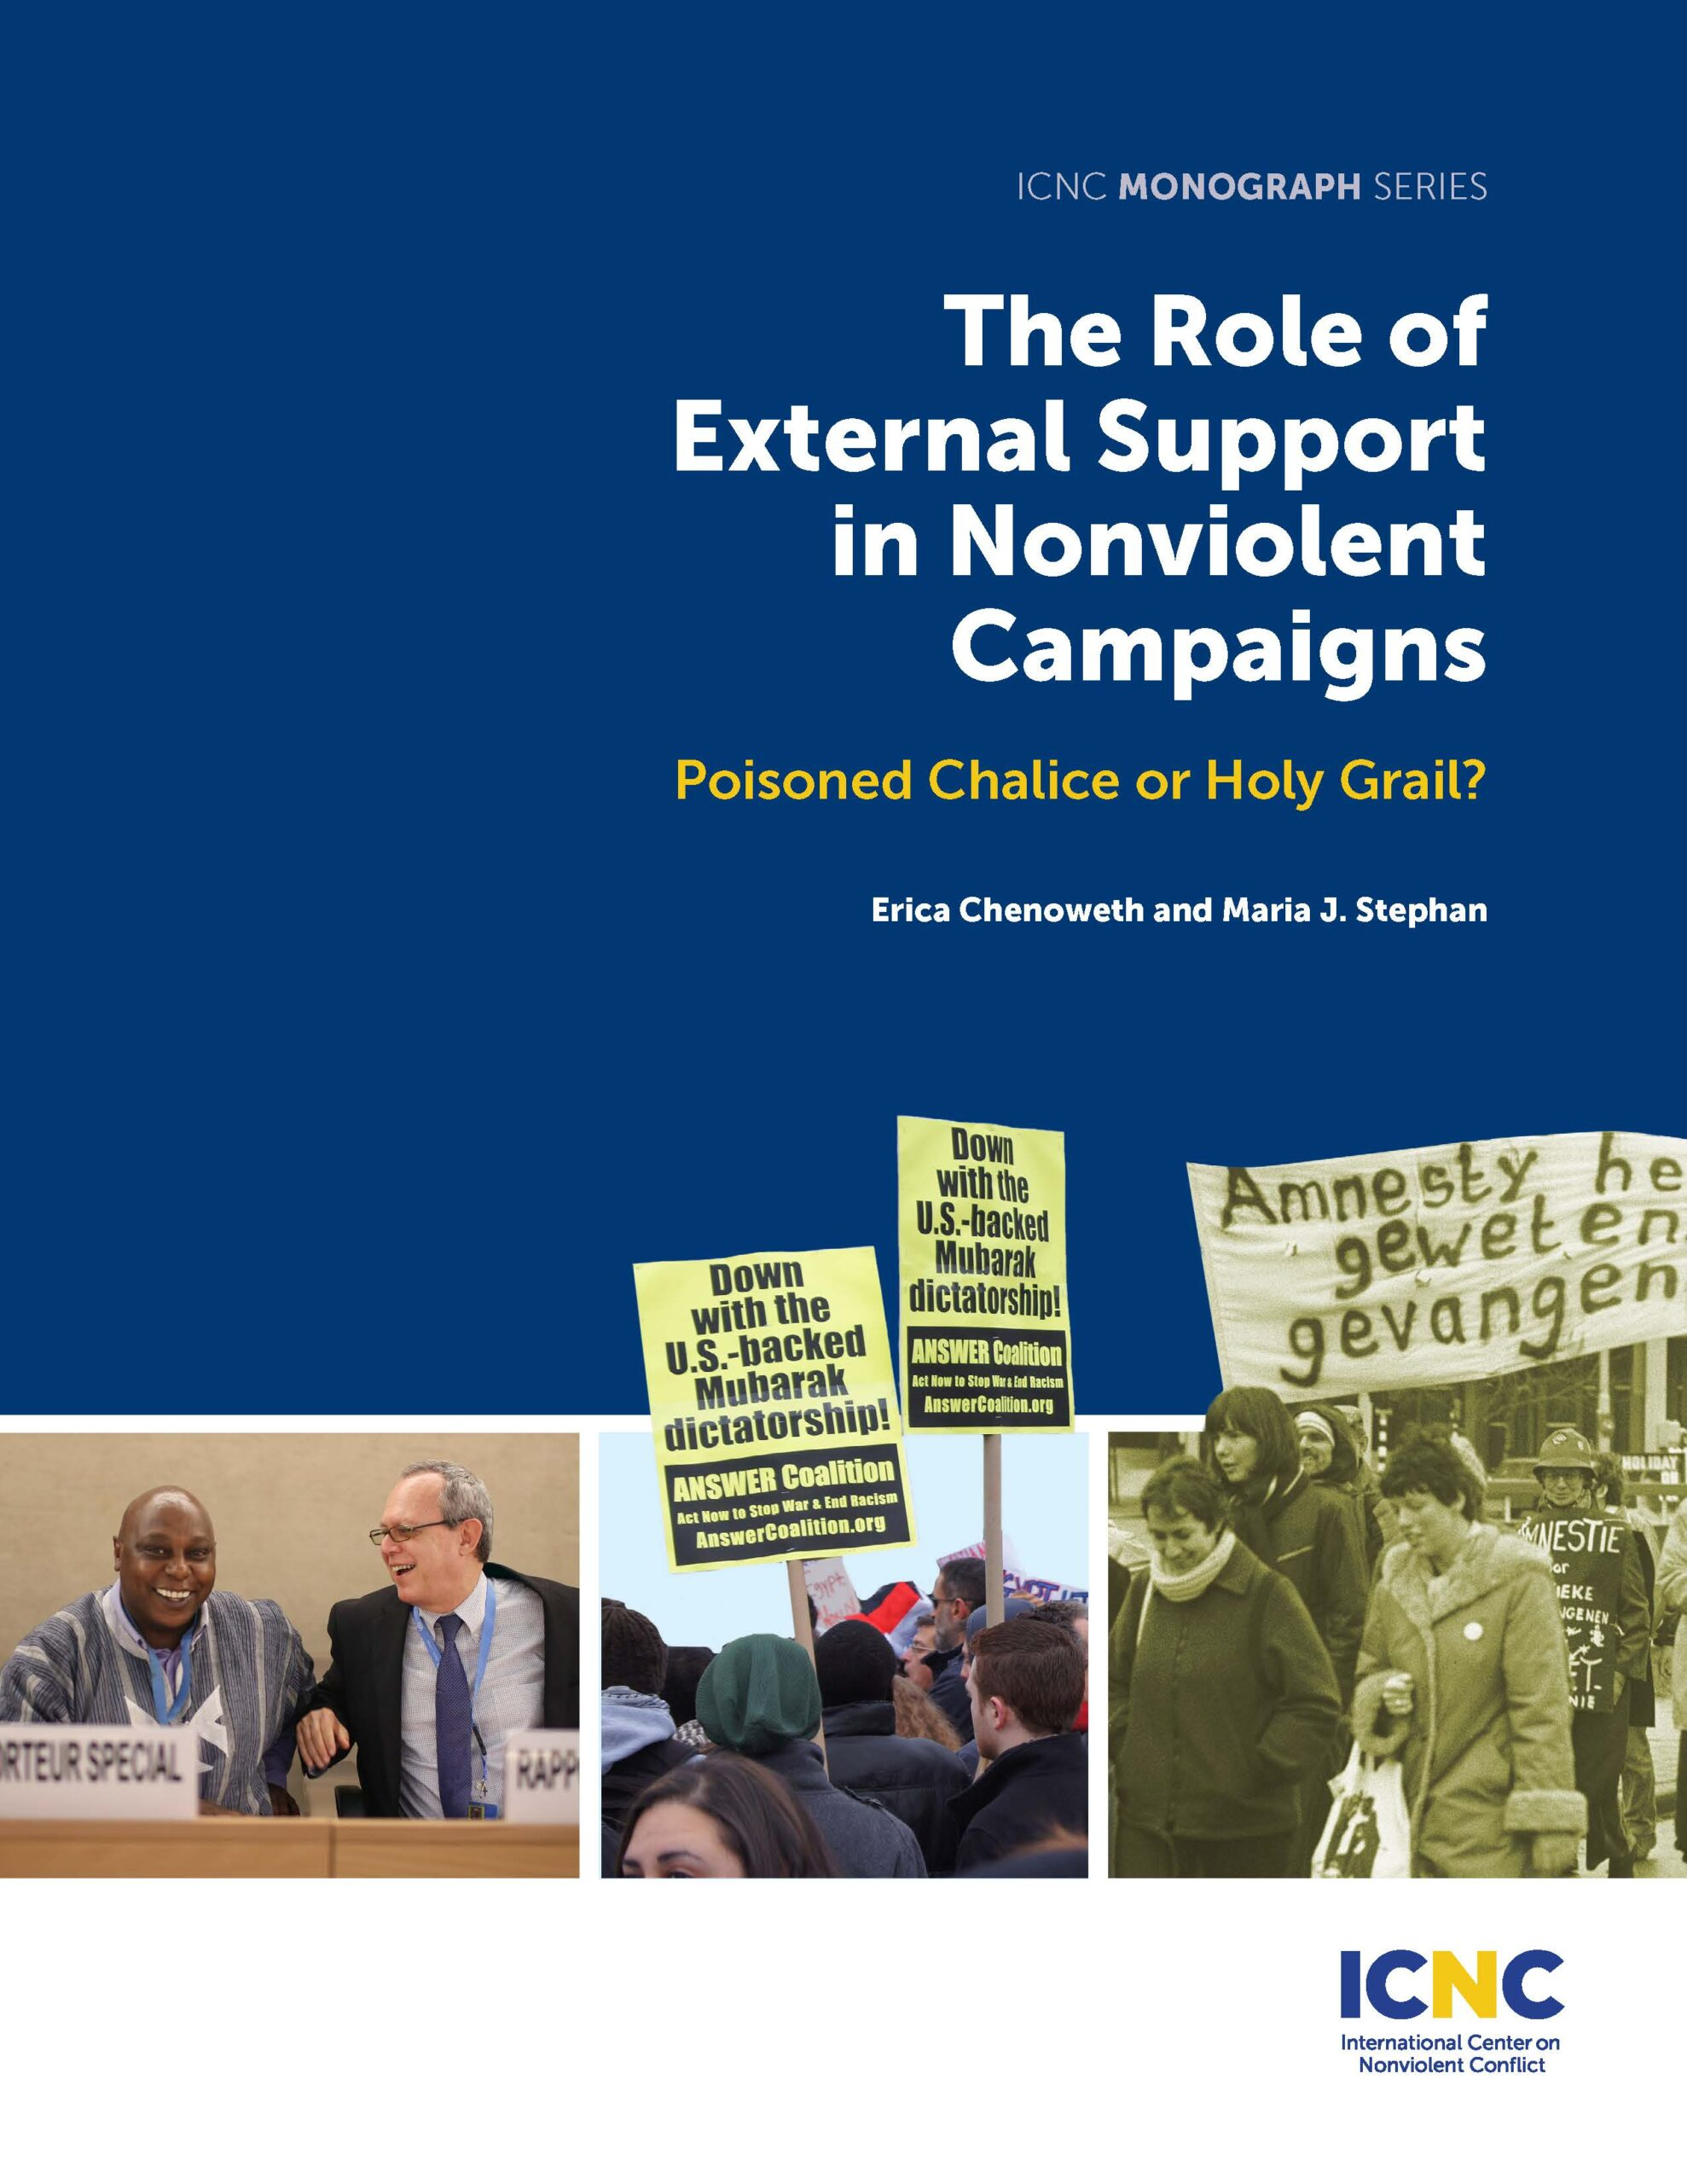 The Role of External Support in Nonviolent Campaigns: Poisoned Chalice or Holy Grail?